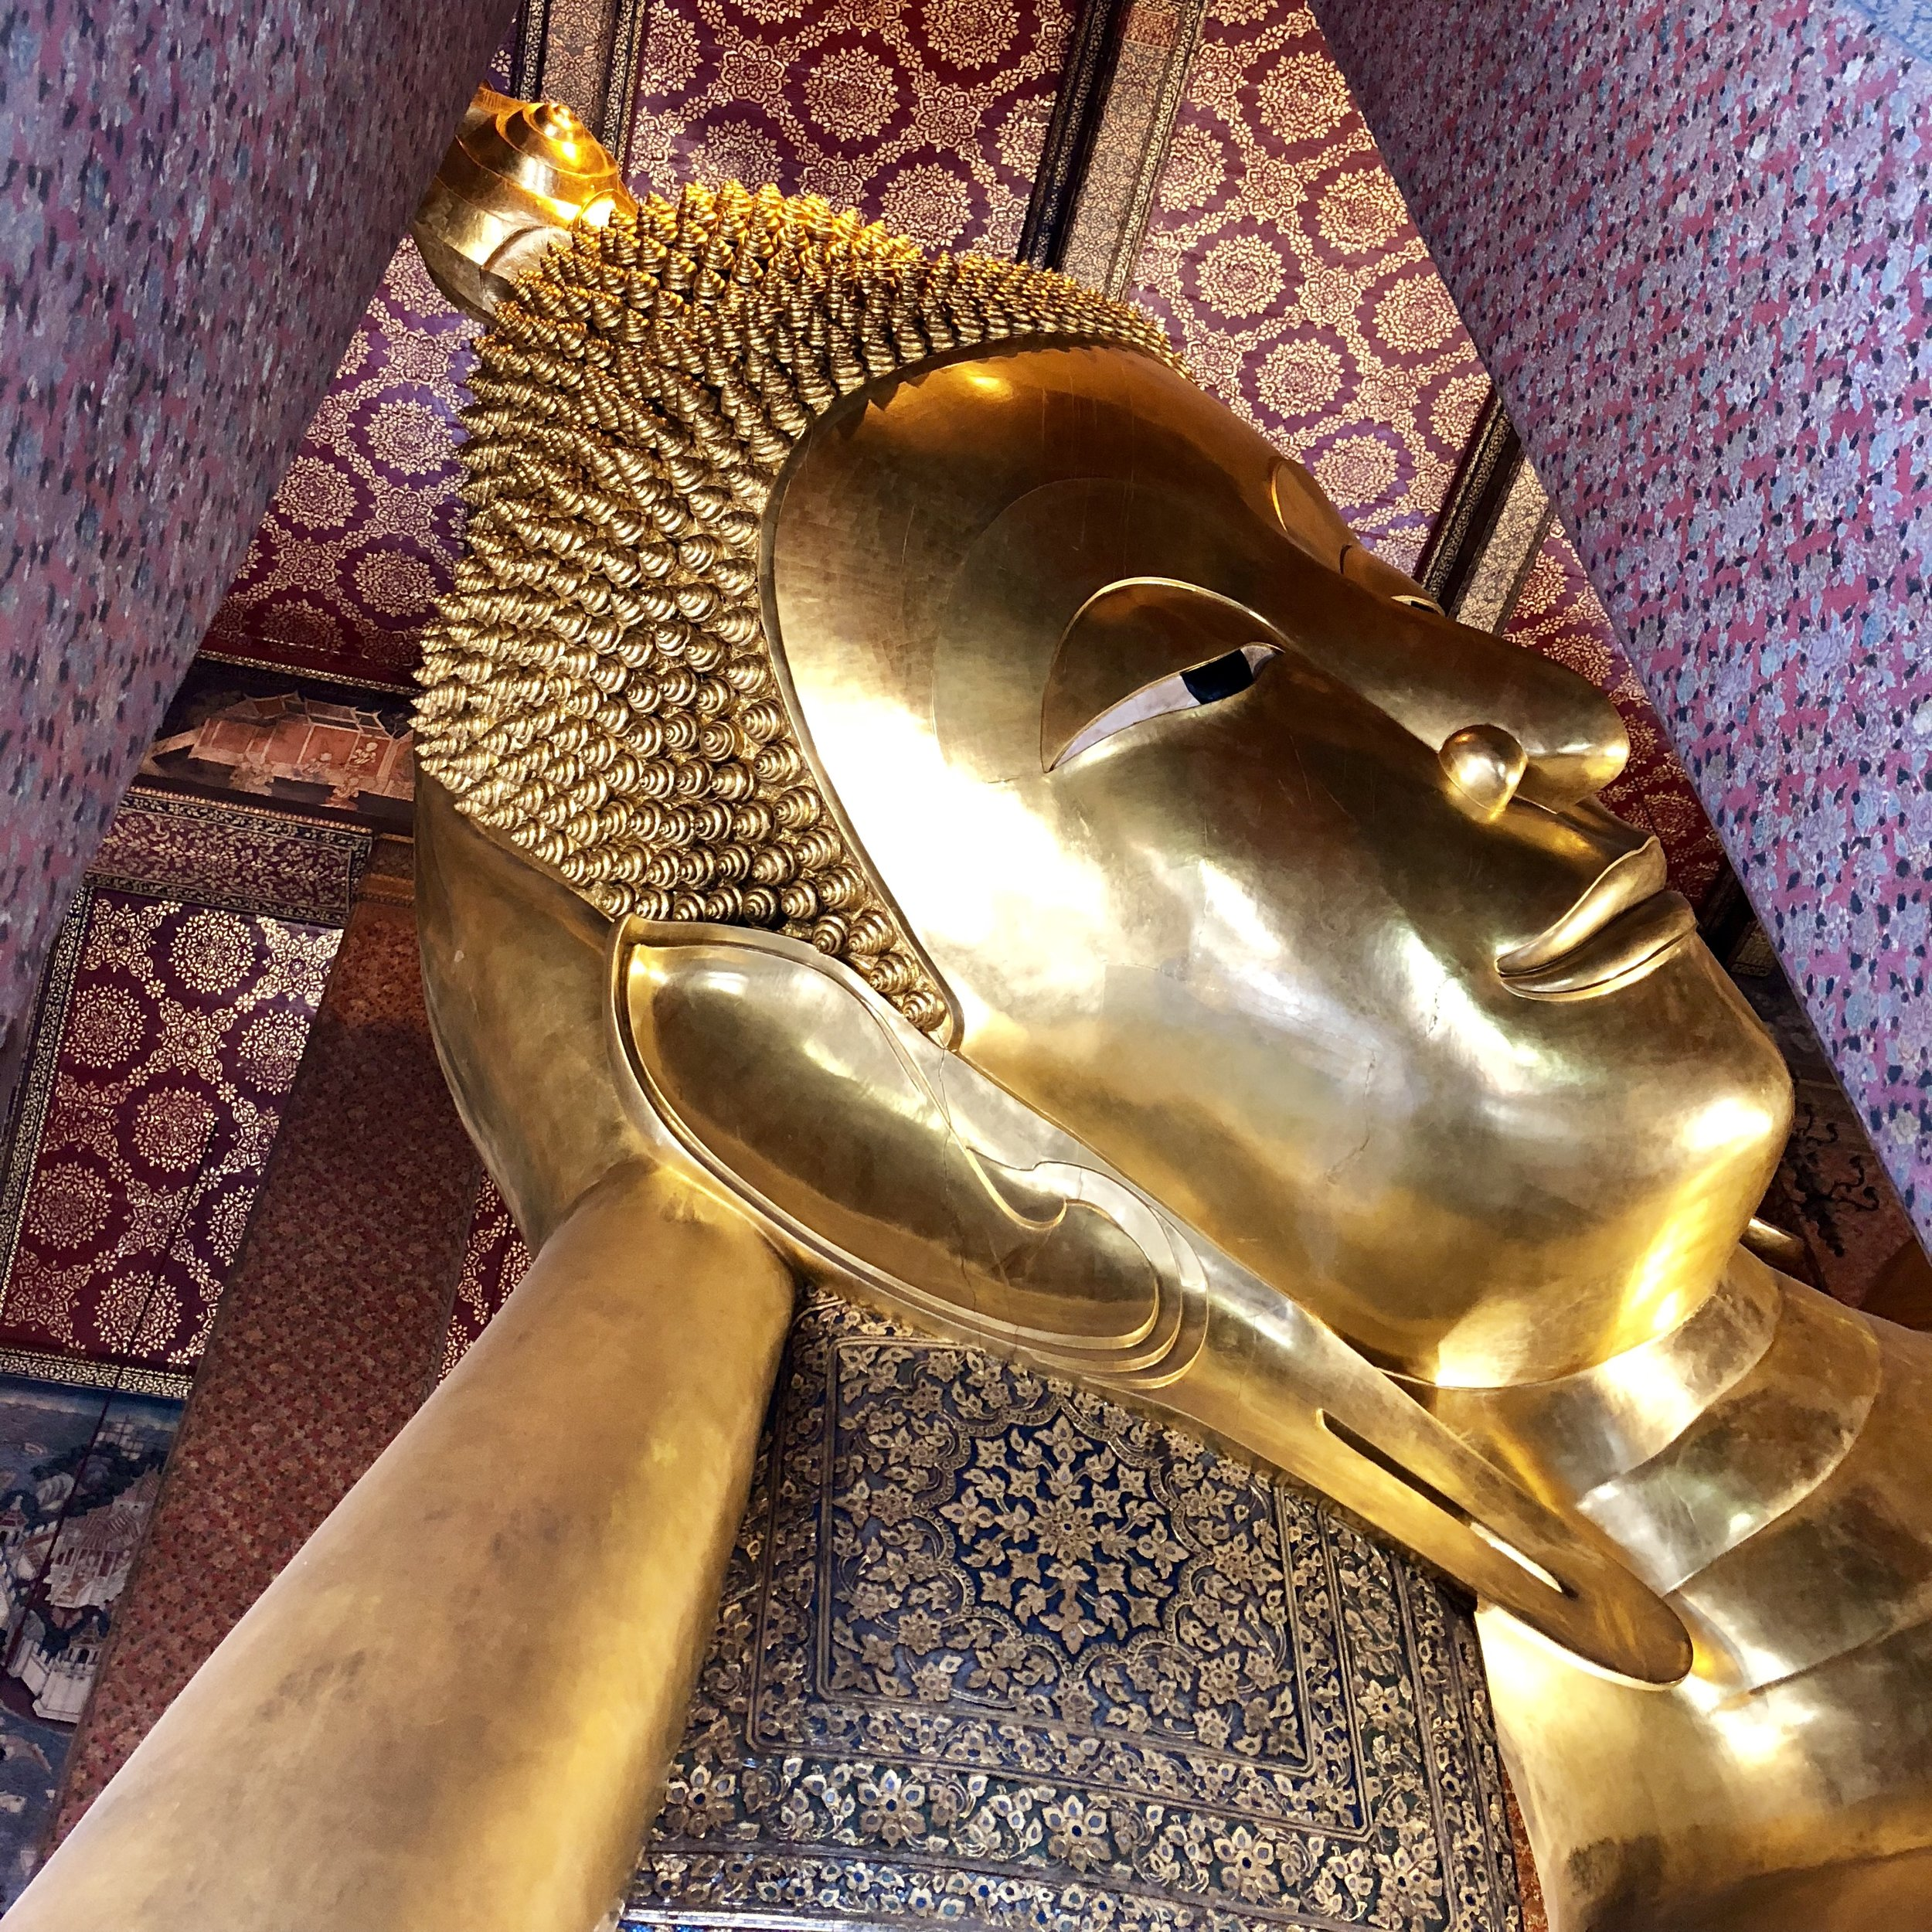 A photograph of the giant reclining Buddha. One of the last images that I expect to take. Note the gorgeous walls, pillars, and ceiling.